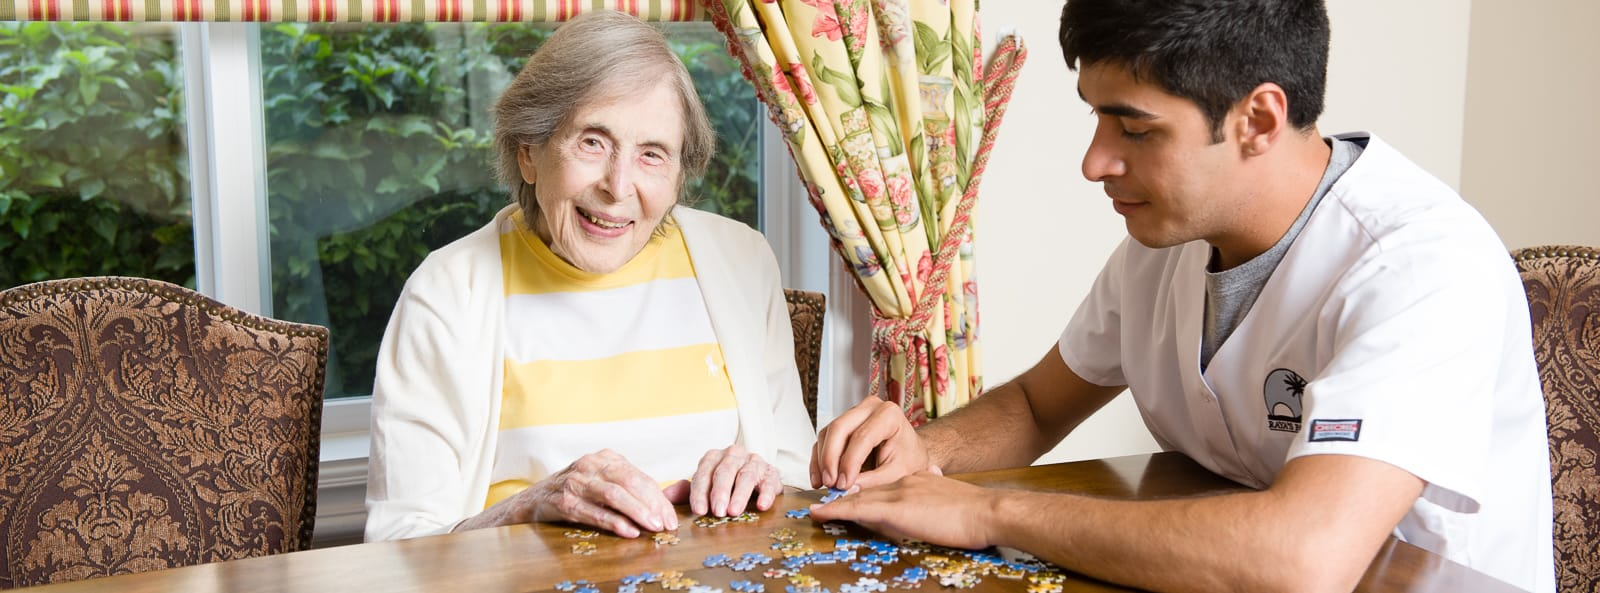 woman doing puzzle with staff member